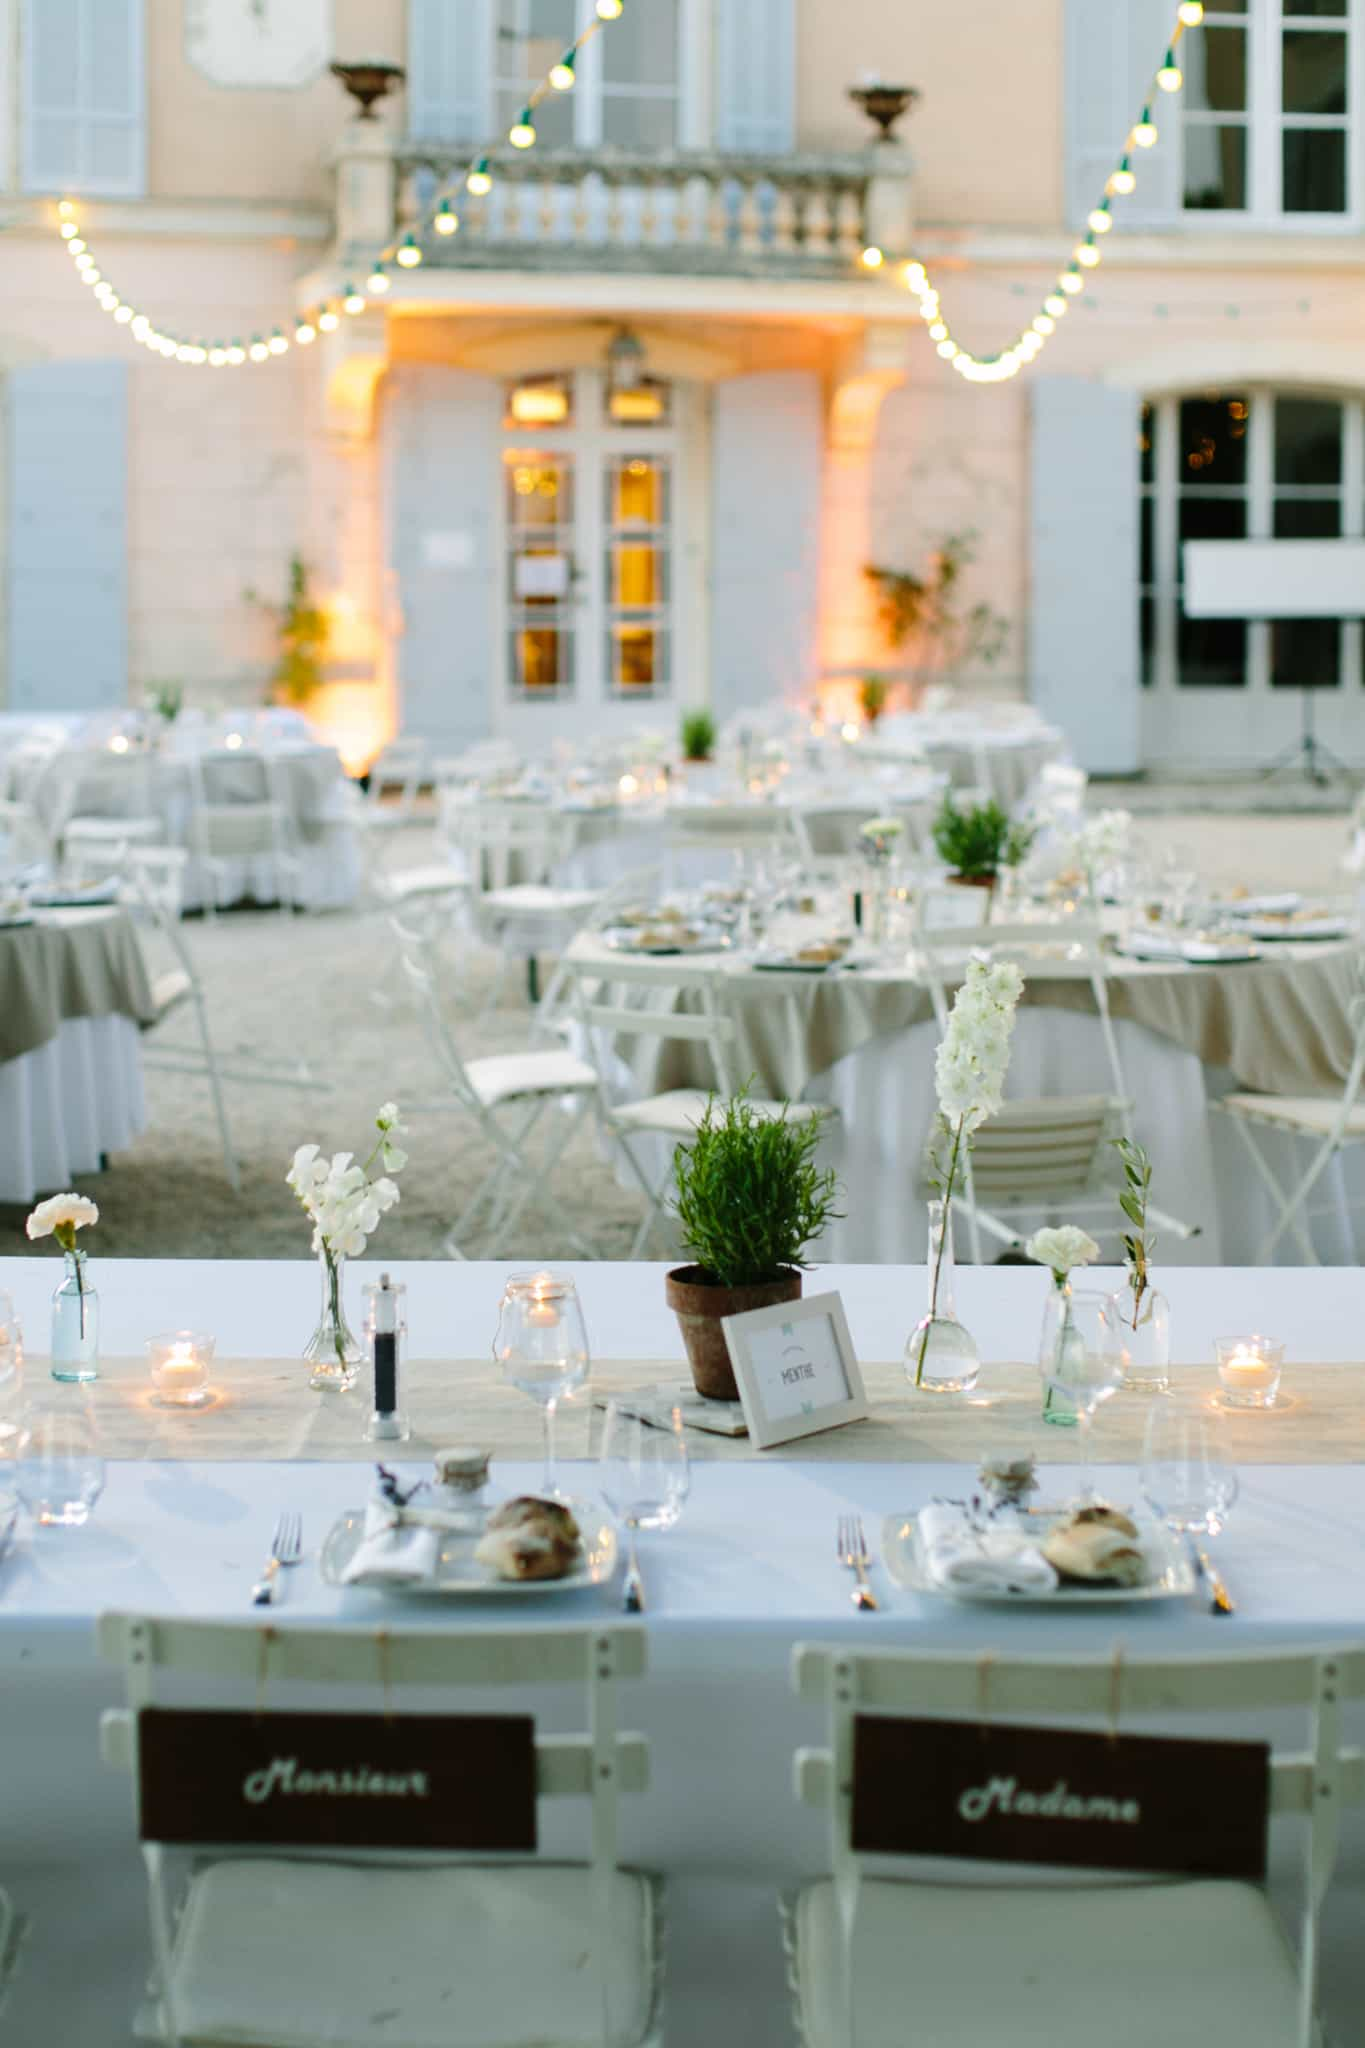 Cigales et Petits Fours - Mariage Provence